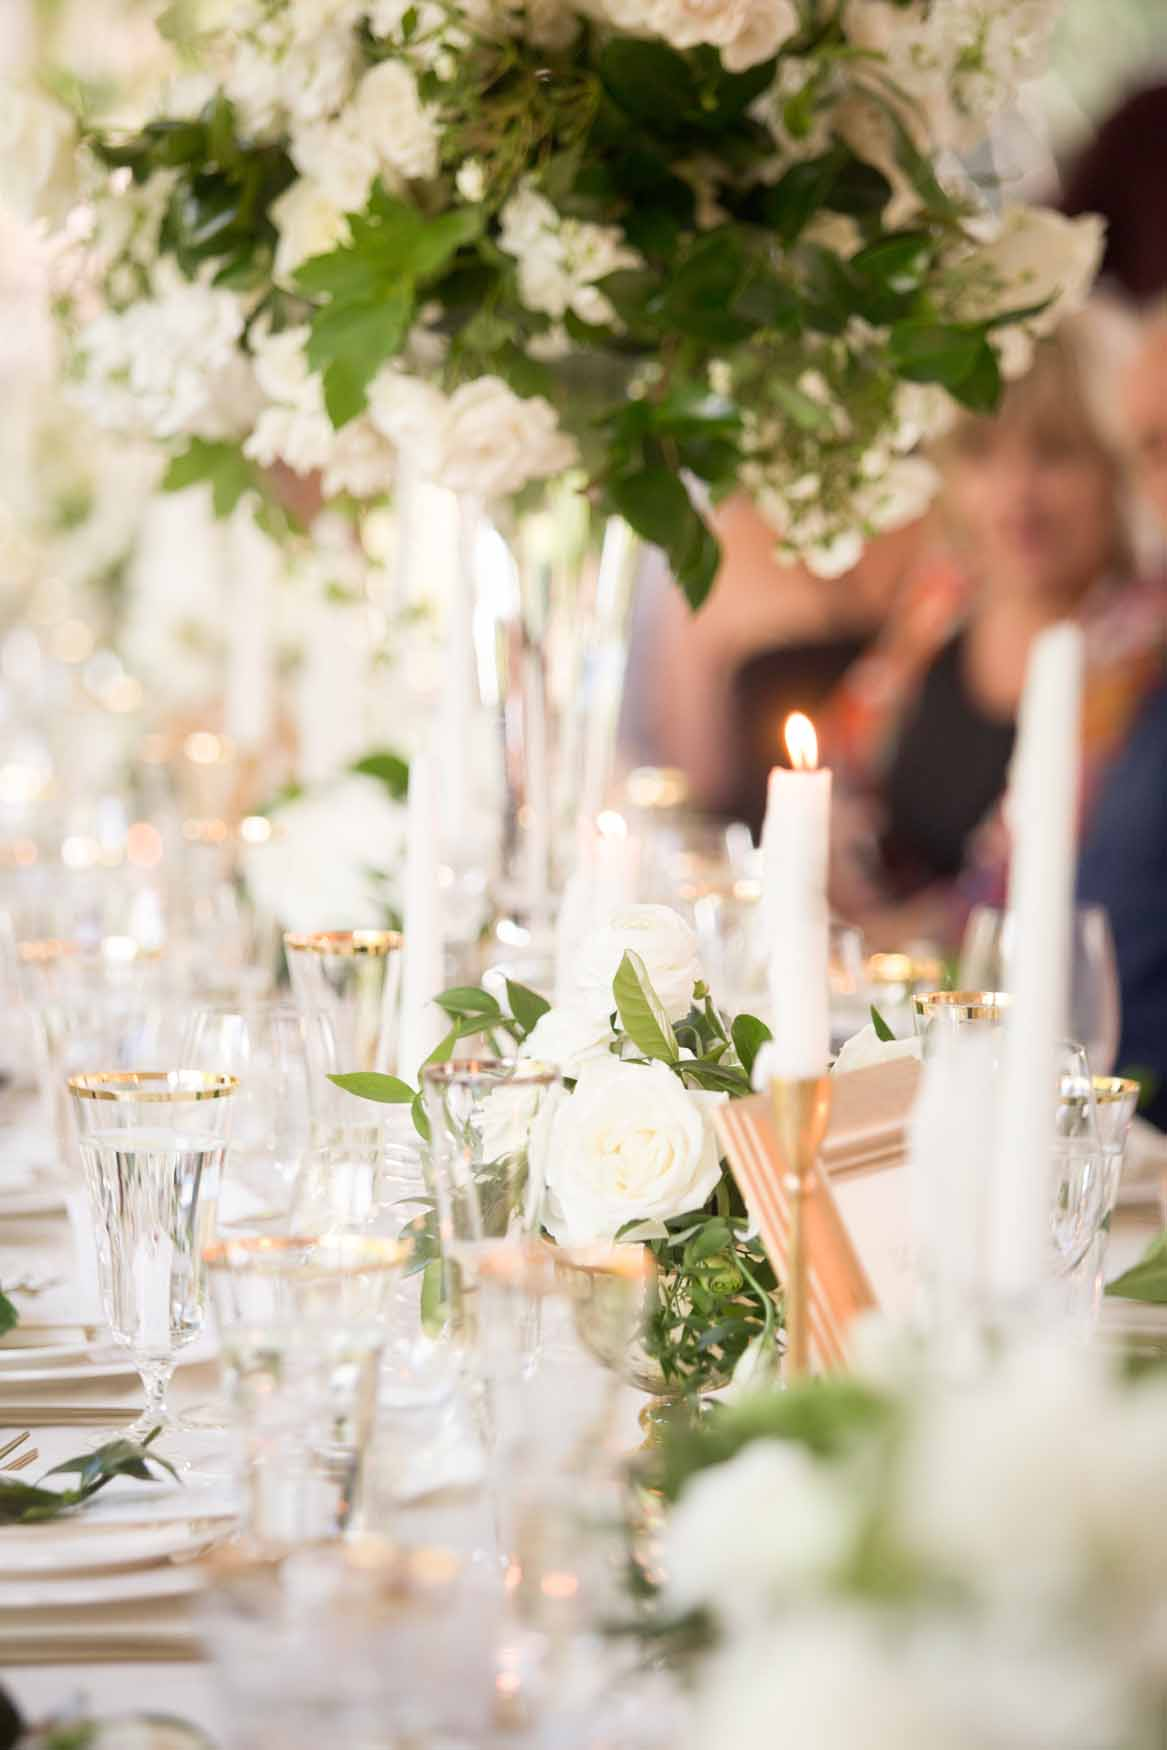 A head table willed with white centerpieces and candles - Elegant Summer Private Estate Wedding. Flora Nova Design Seattle